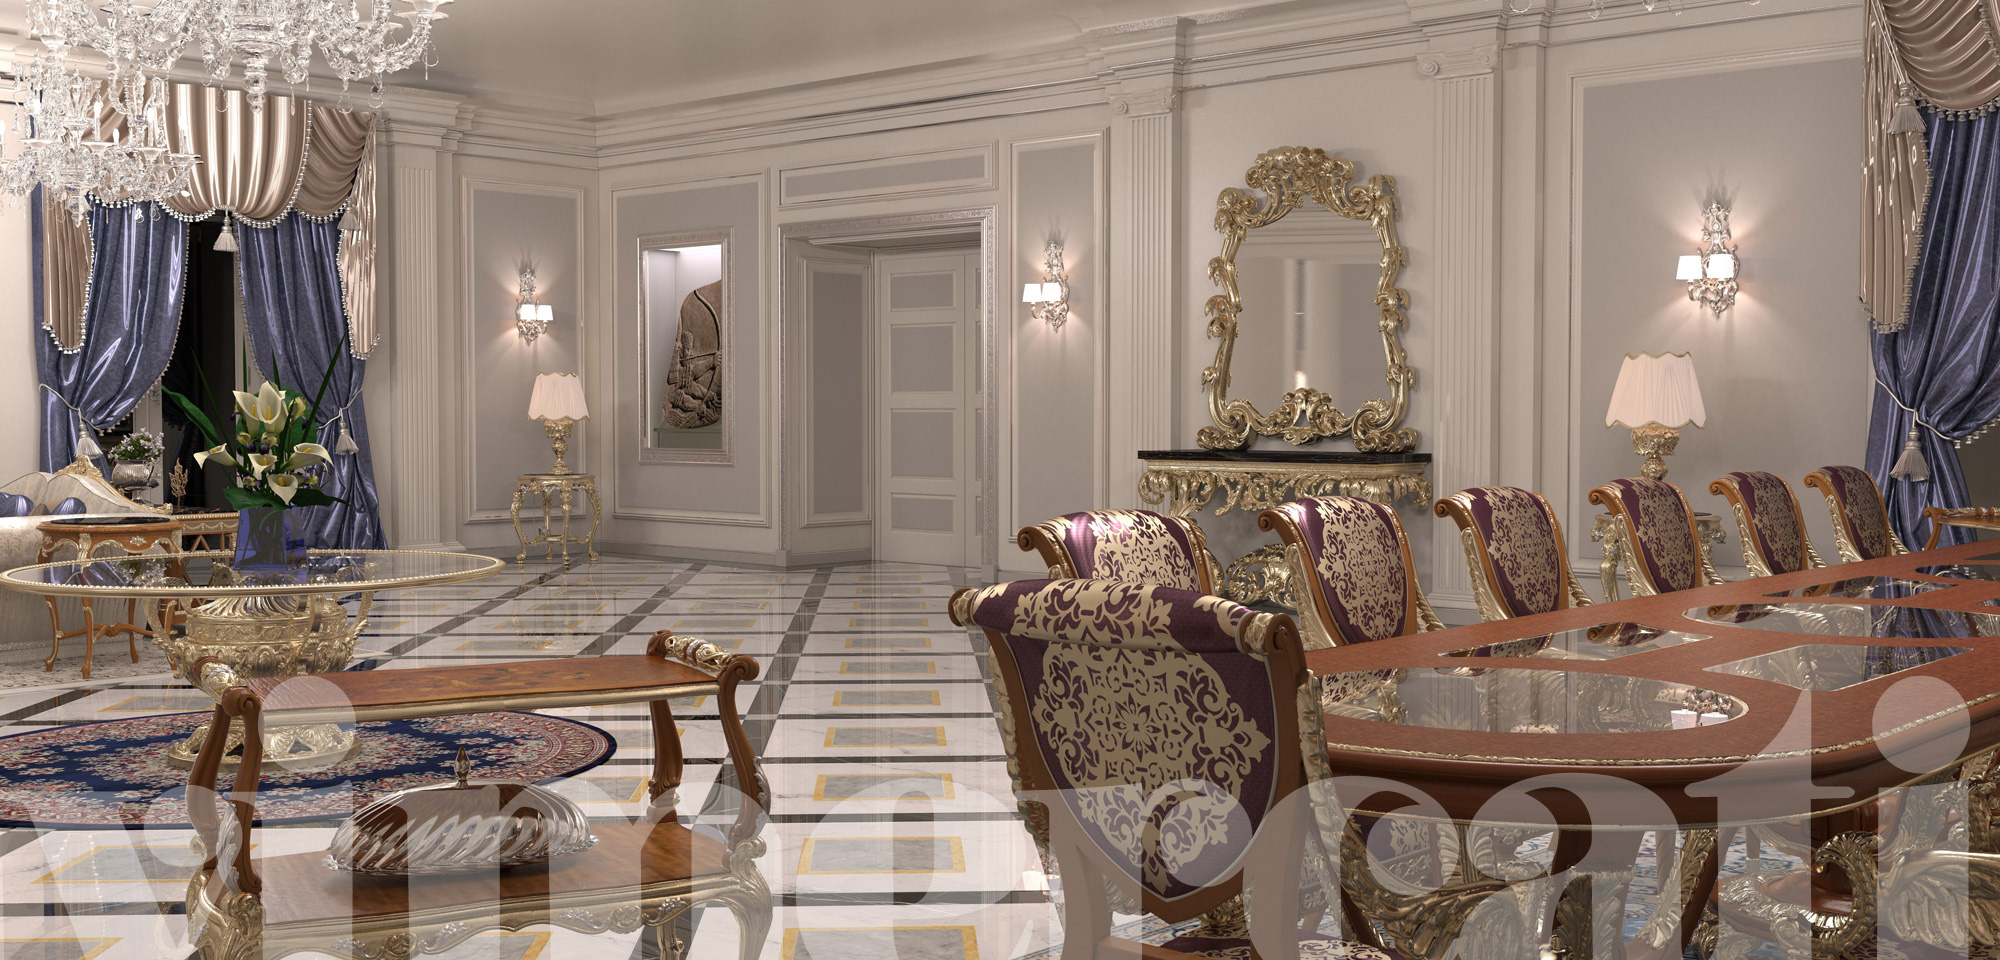 Furniture destined to luxury villas the exclusivity of classic furnishings - Arredamenti interni di ville di lusso ...